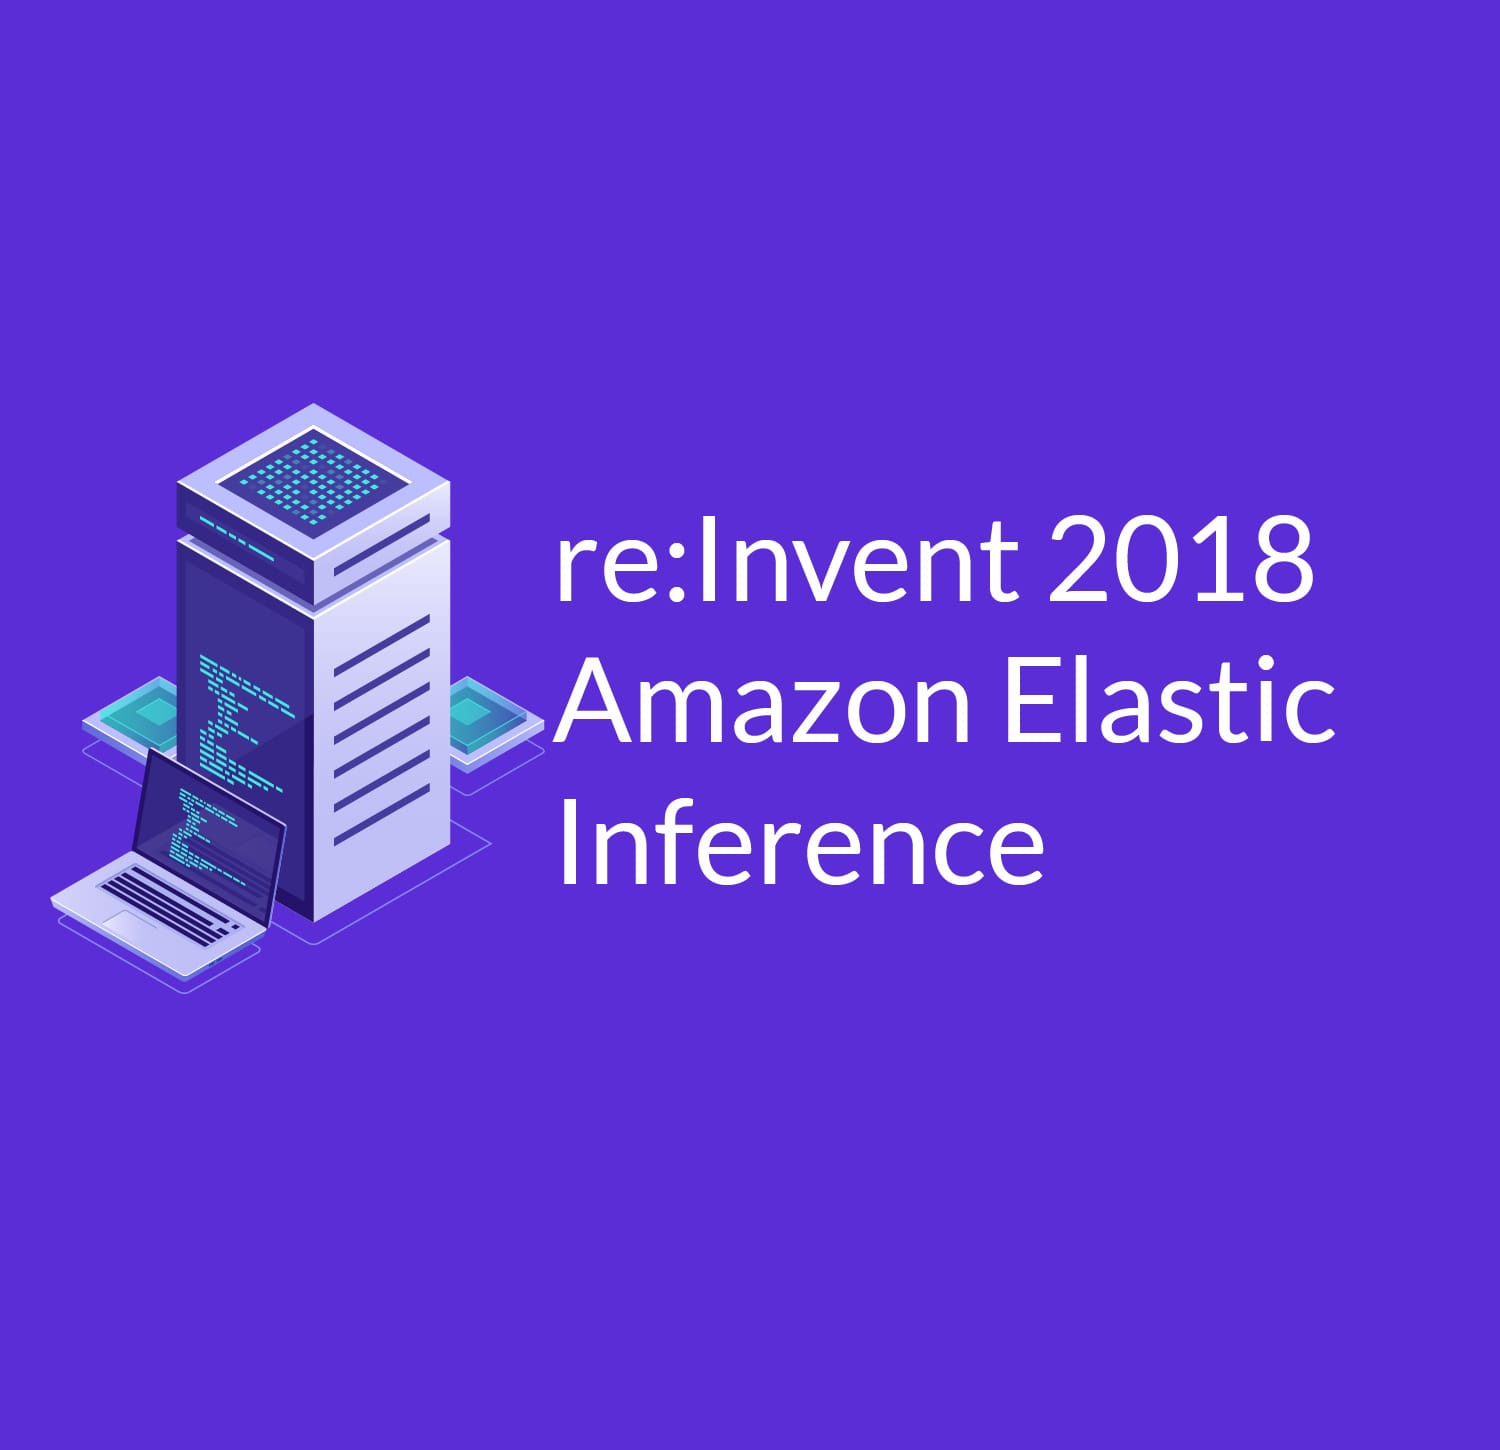 Amazon Elastic Inference - GPU Acceleration for Faster Inferencing